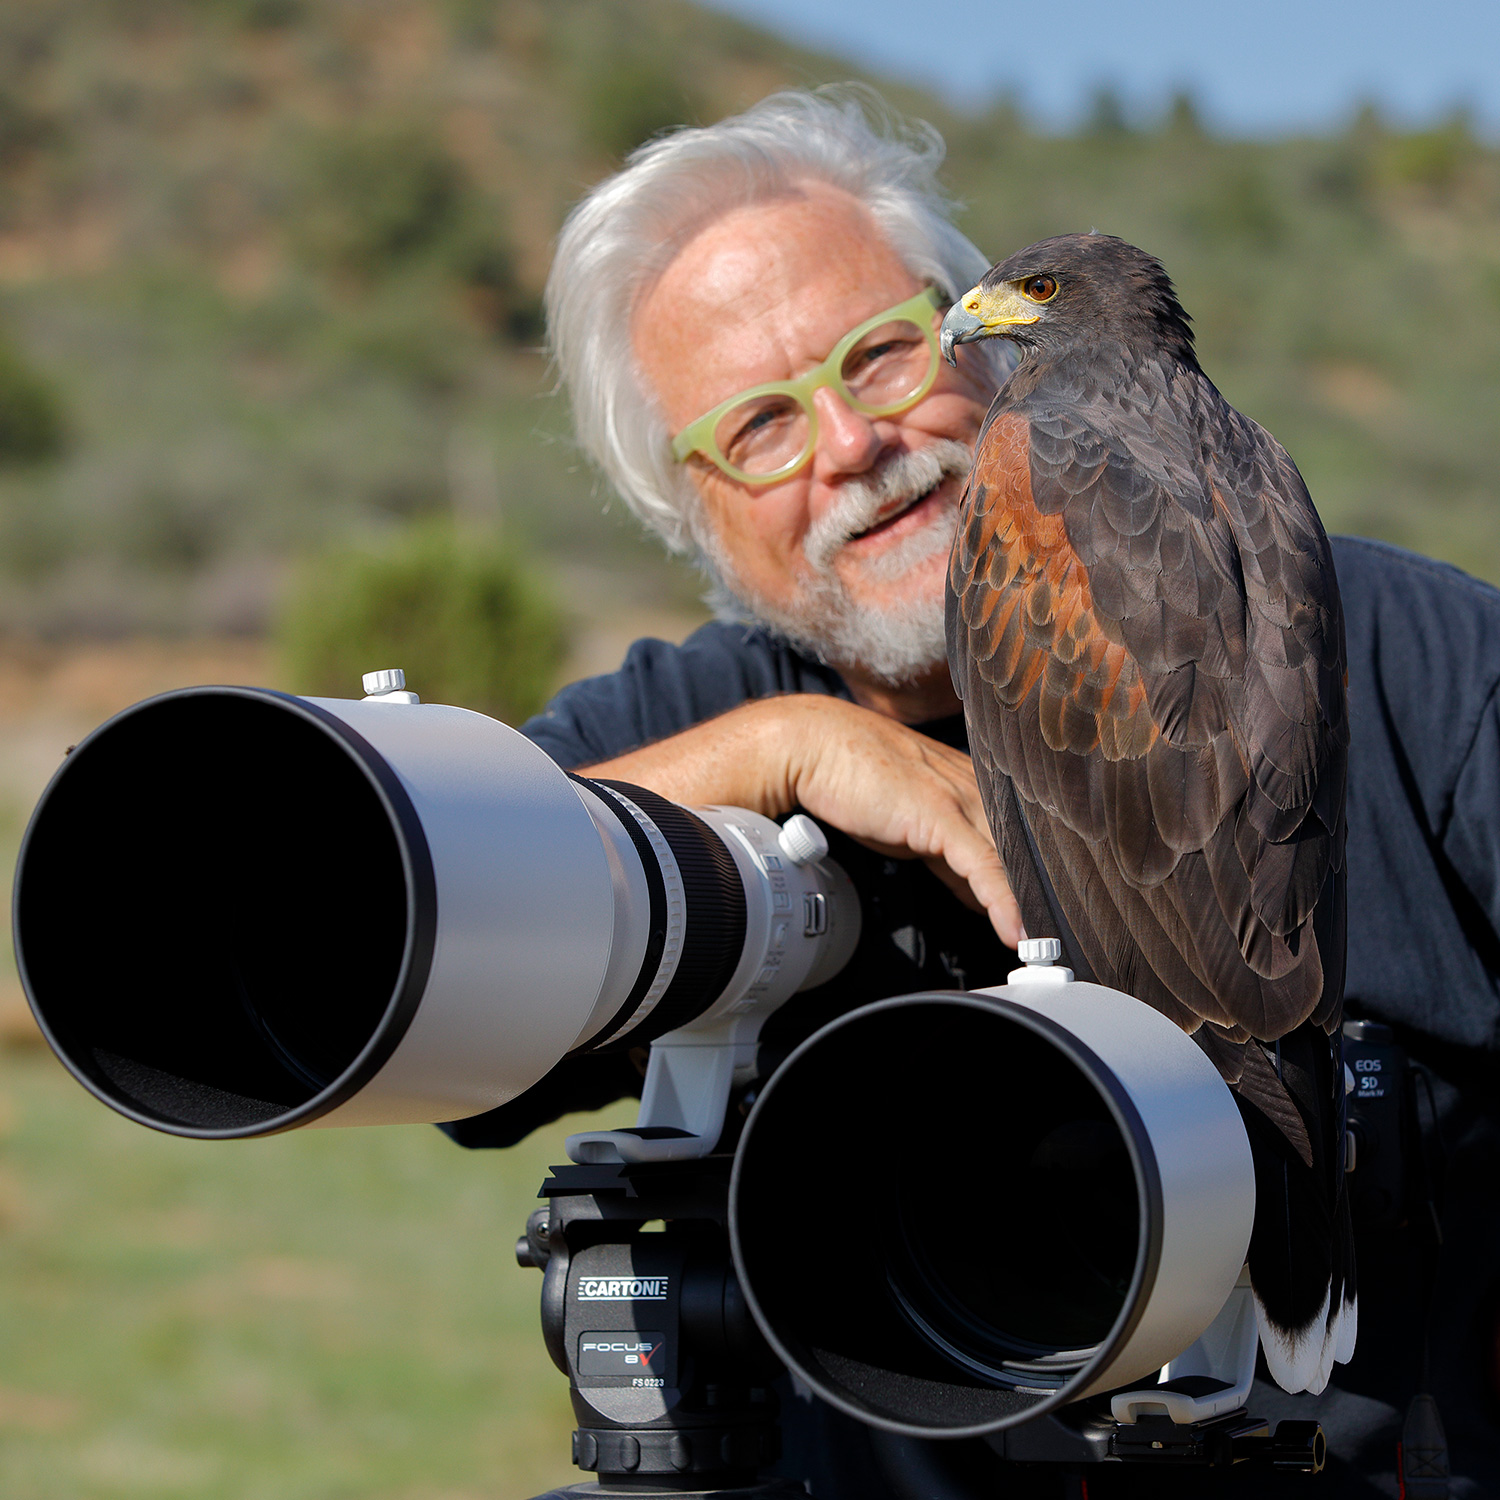 Canon Explorers of Light Series Q&A with photographer Bruce Dorn – Portrait of Bruce Dorn with an eagle sitting on his canon lenses.